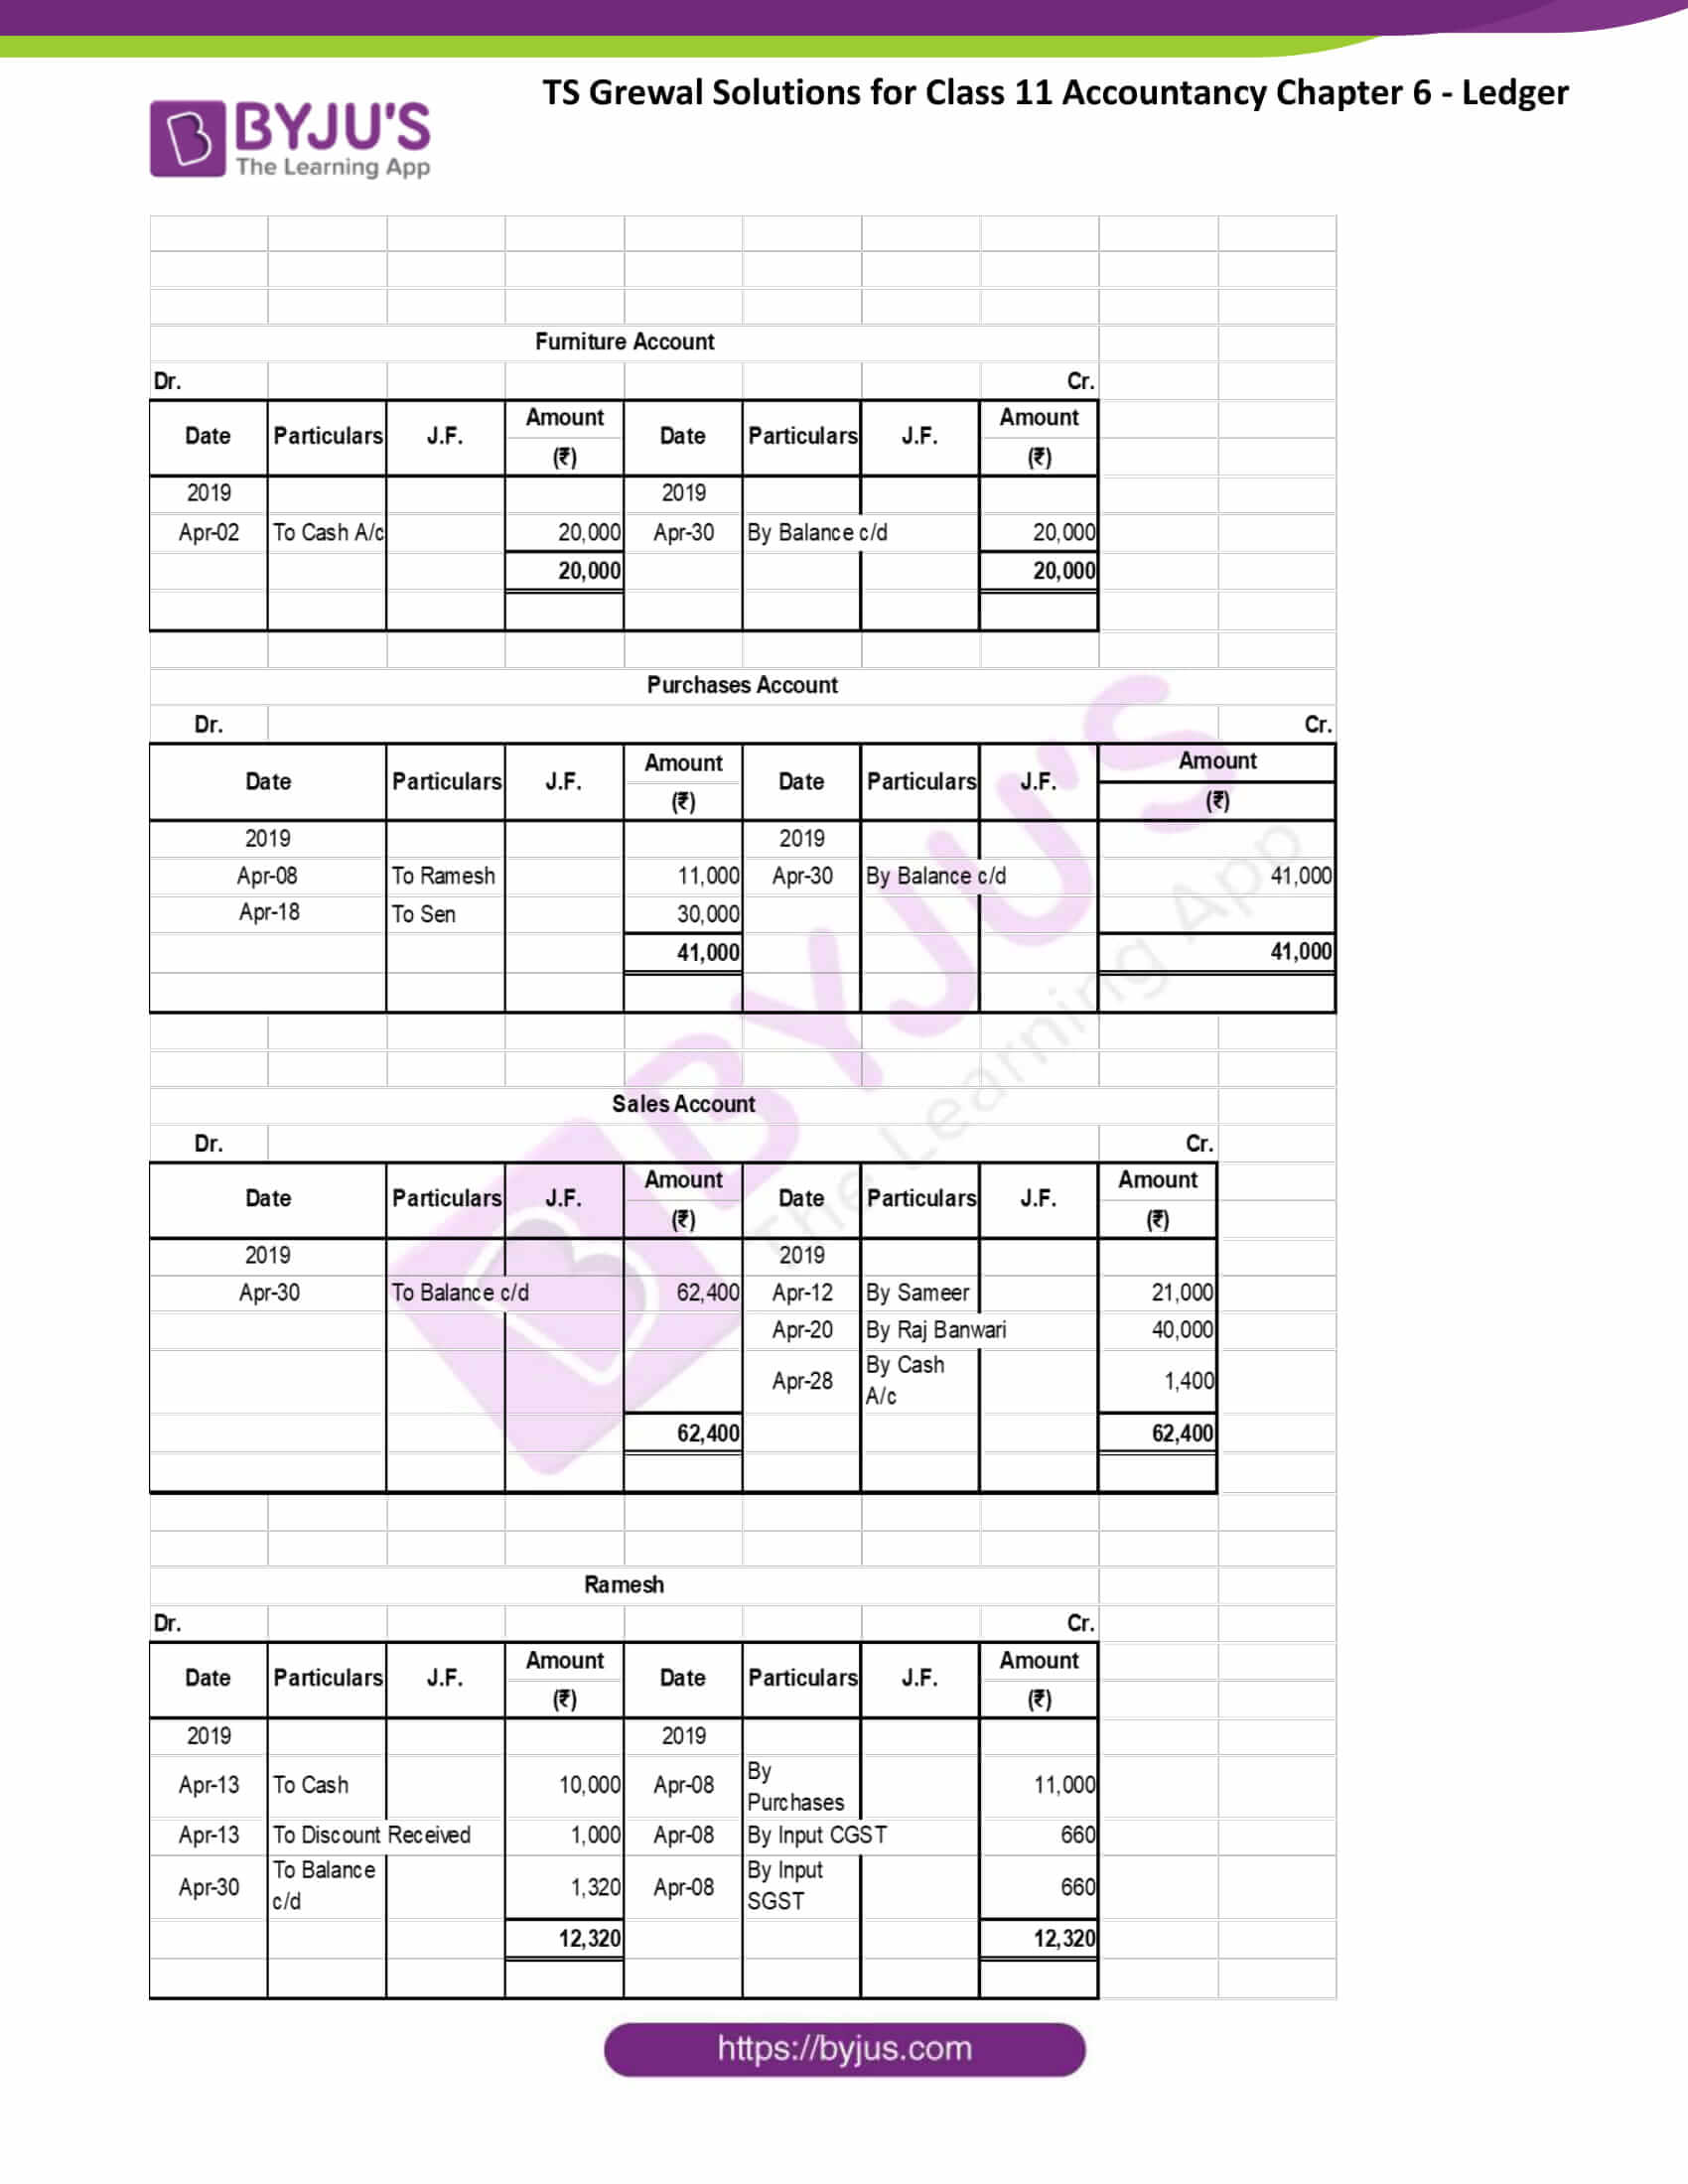 ts grewal class 11 accountancy chapter 6 ledger 64